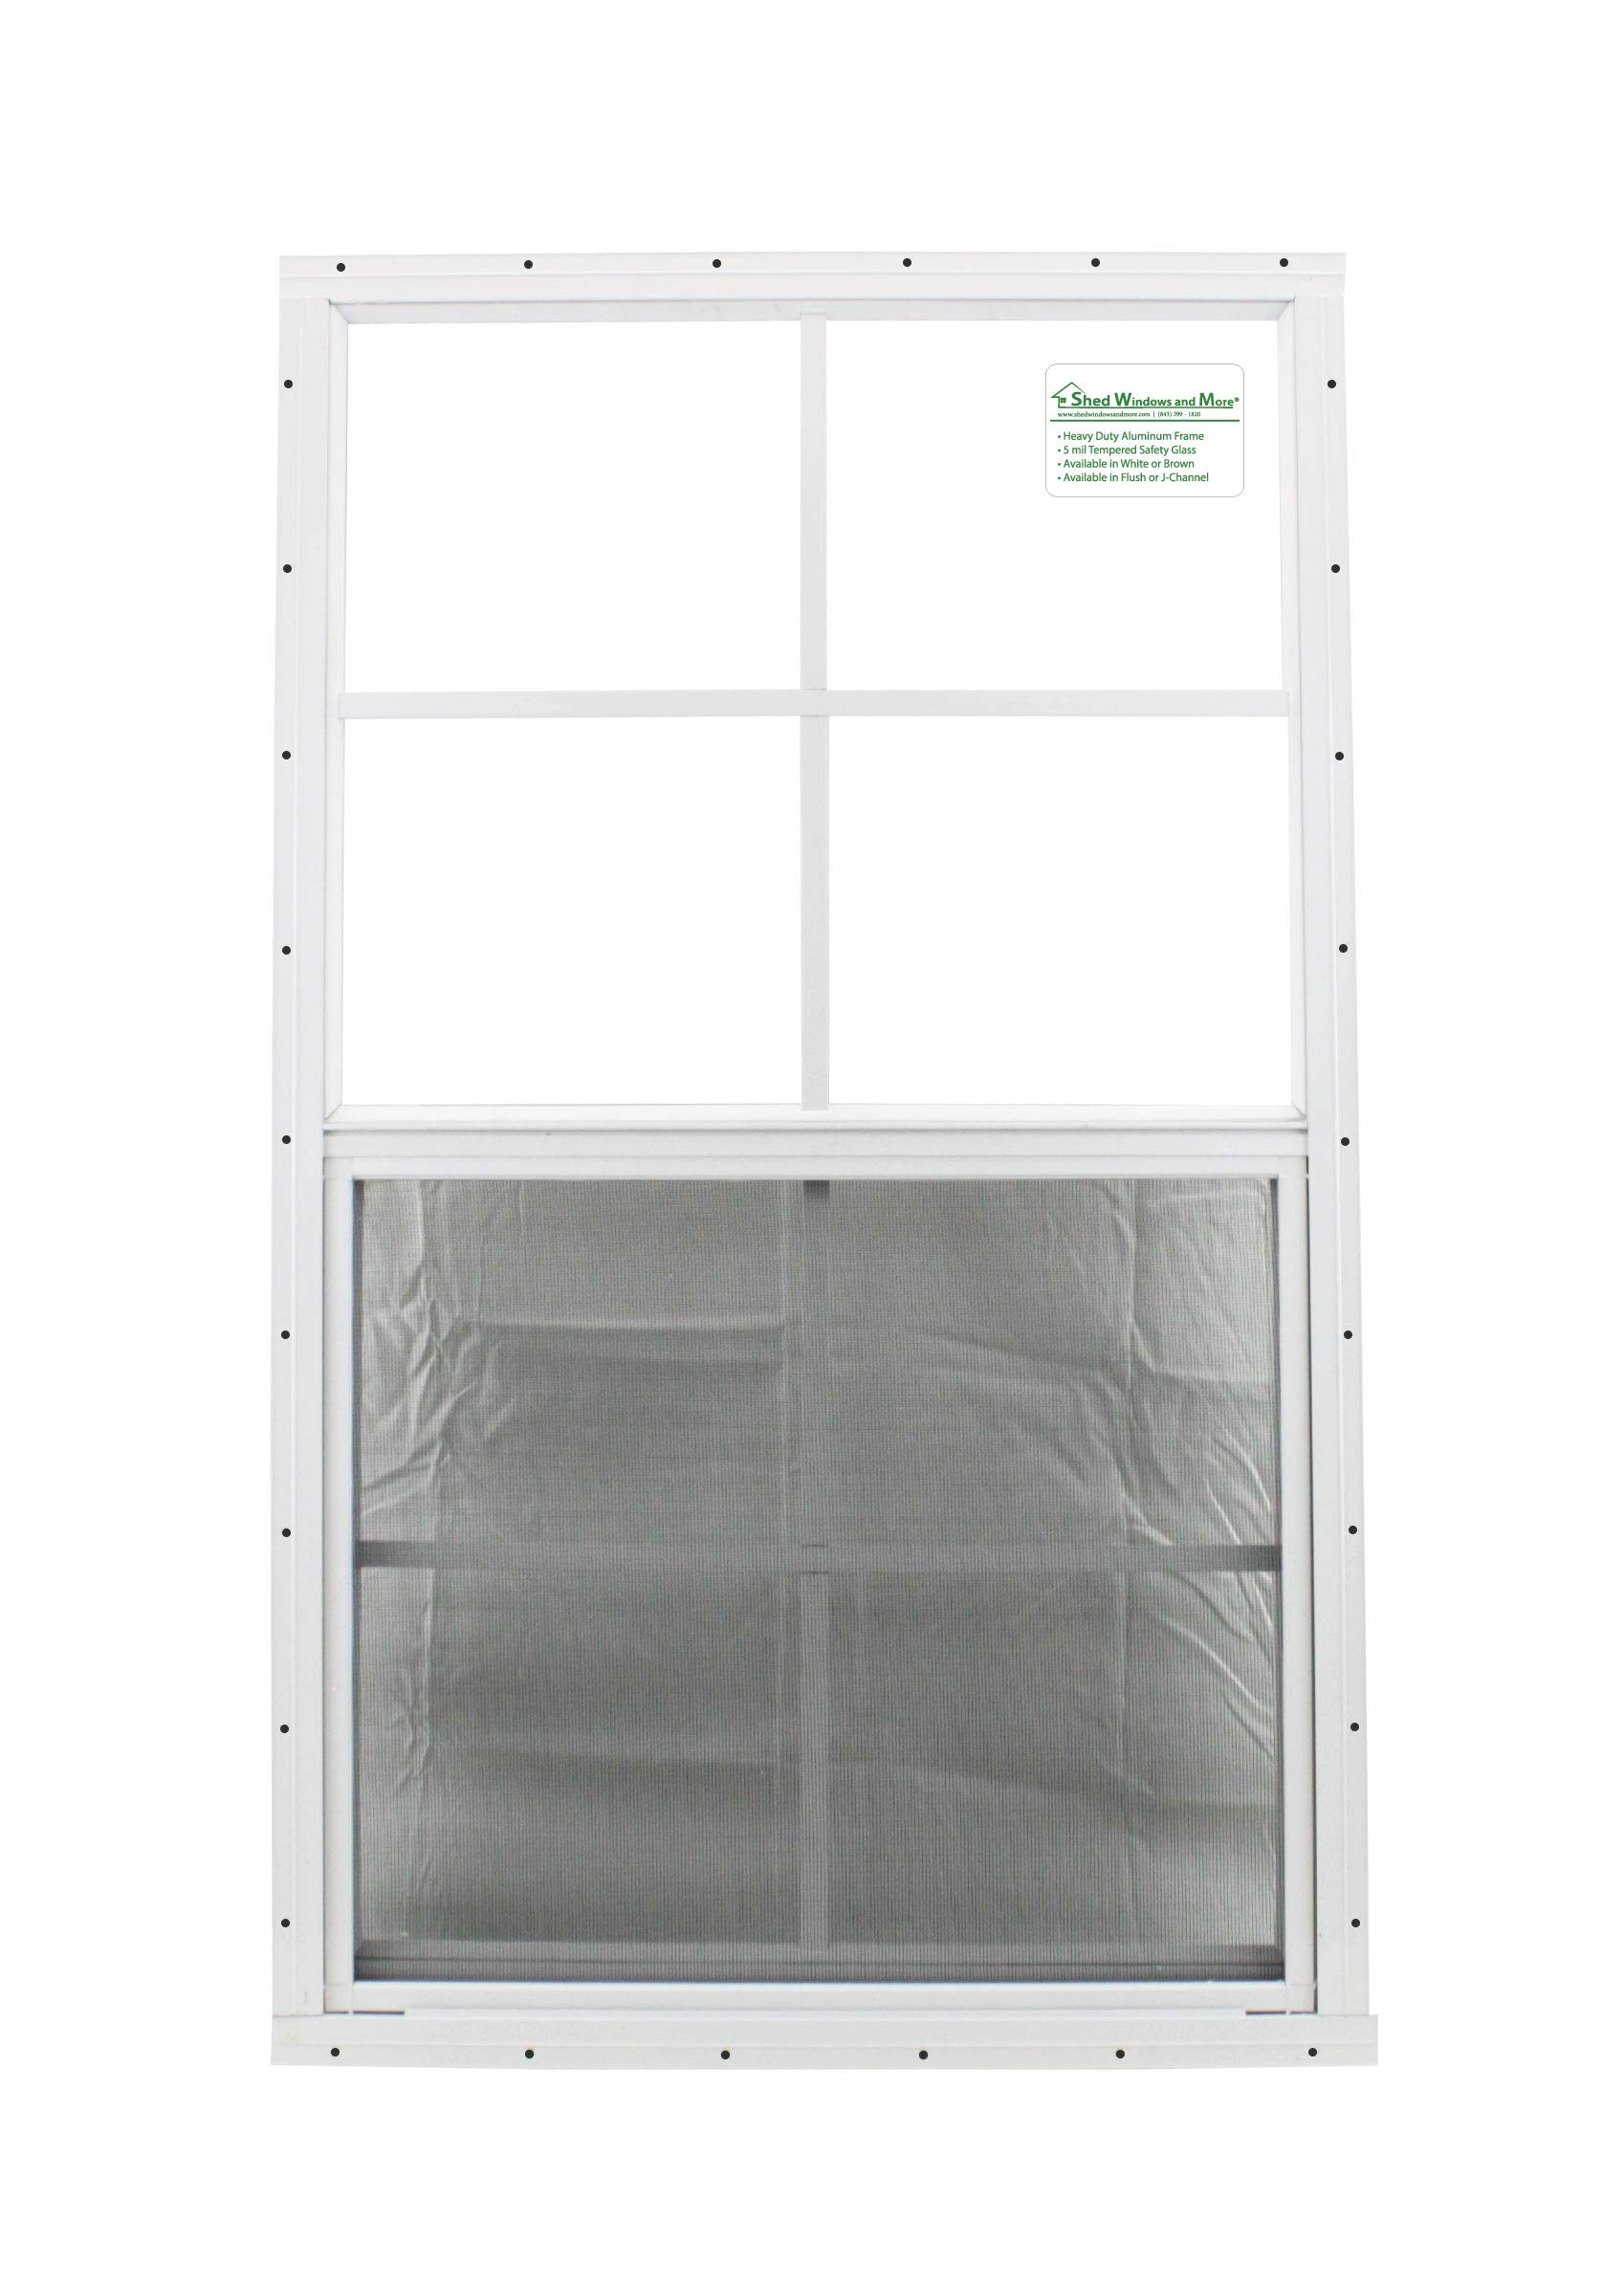 Shed Windows 24'' X 36'' White Flush Mount Safety/Tempered Glass, Playhouse Windows, Chicken Coop Windows by Shed Windows and More